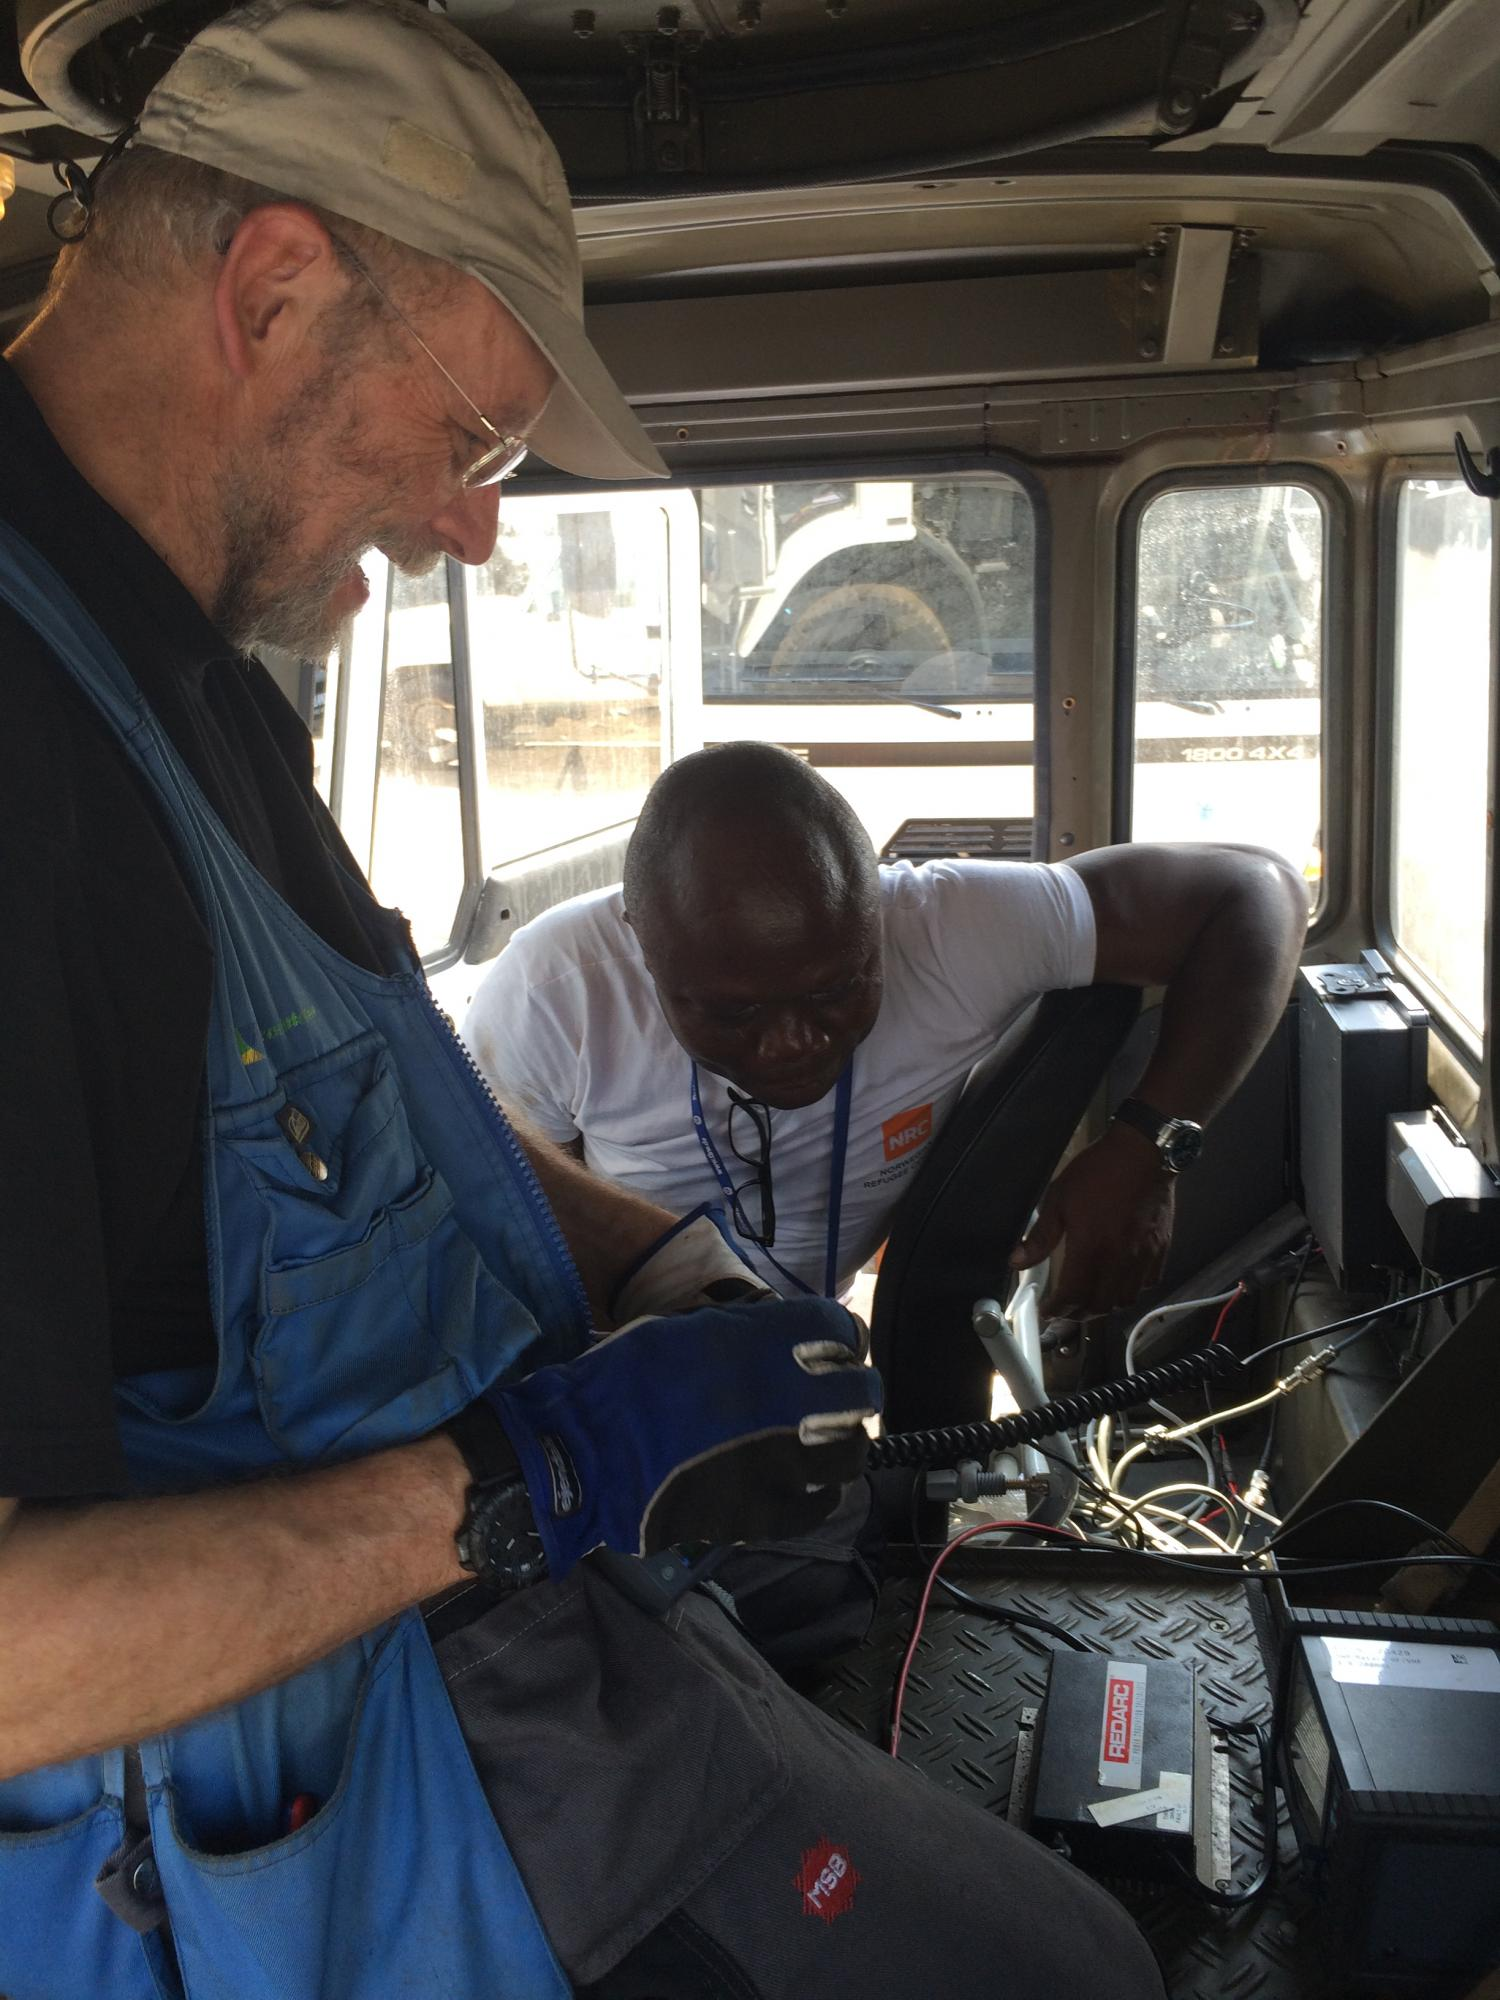 Security communications systems were installed in trucks during the Ebola emergency to support the security of teams in the field - Monrovia, Liberia.